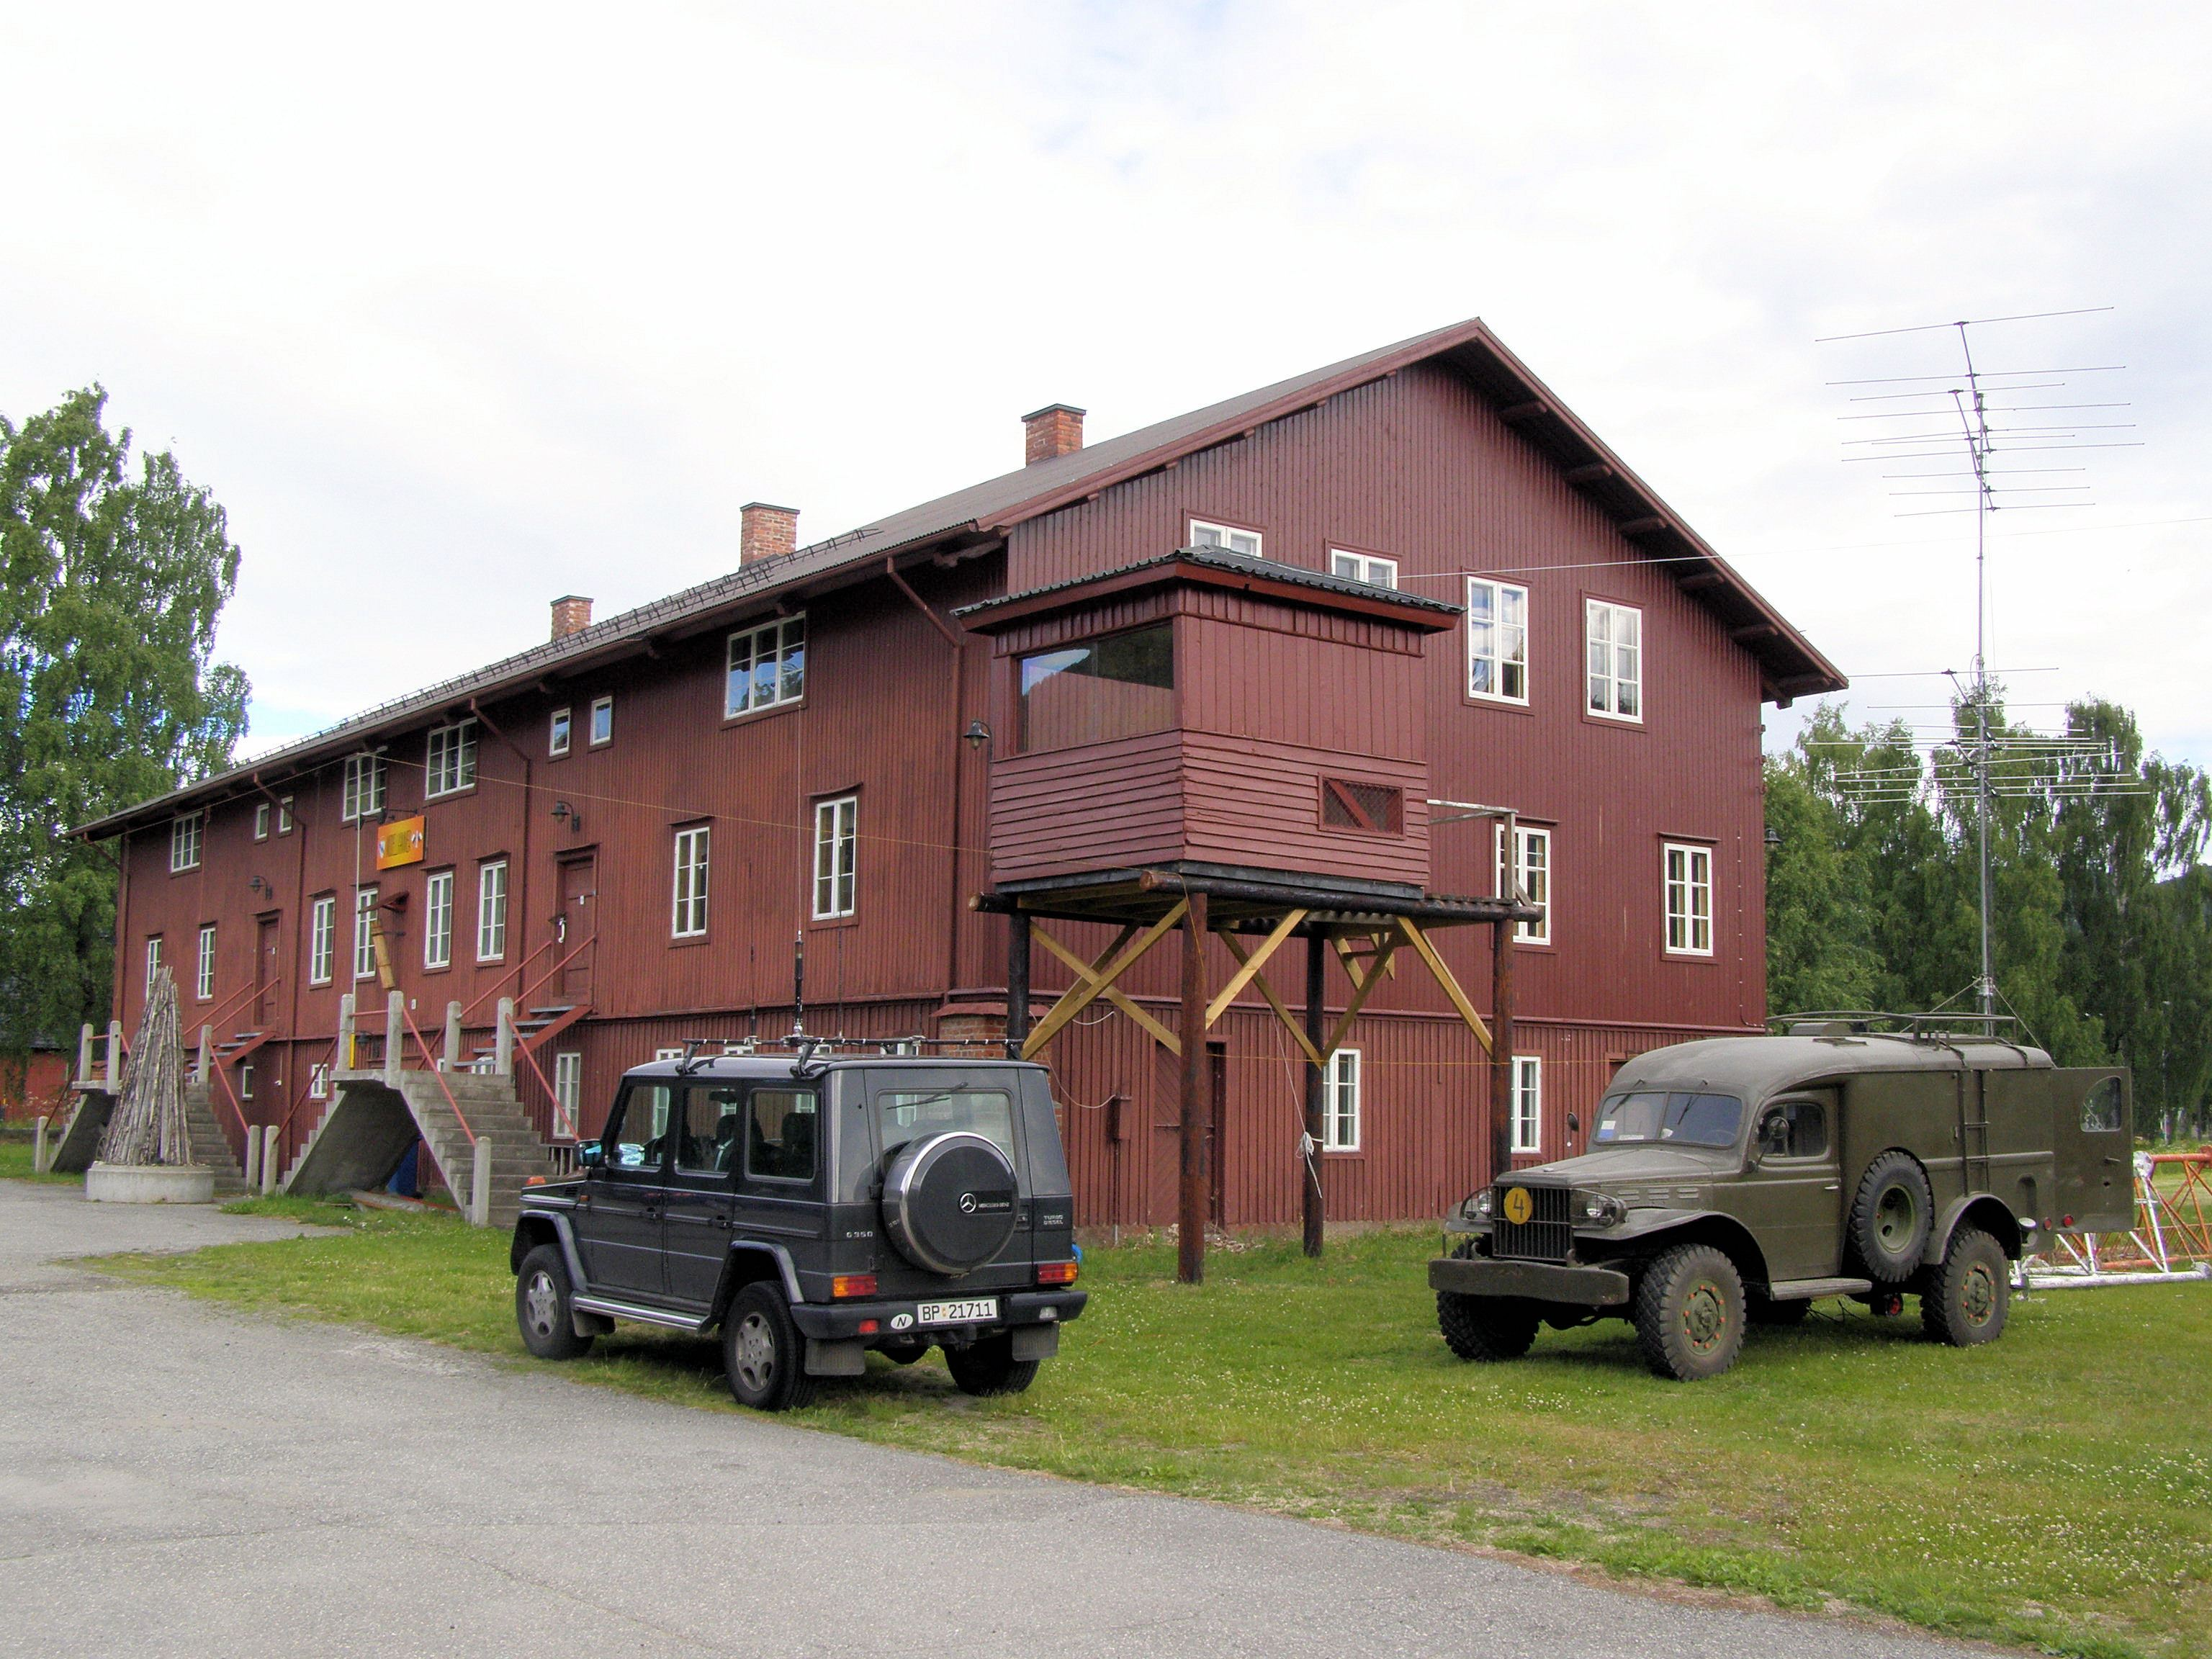 THE SIGNALS MUSEUM OF THE NORWEGIAN ARMED FORCES